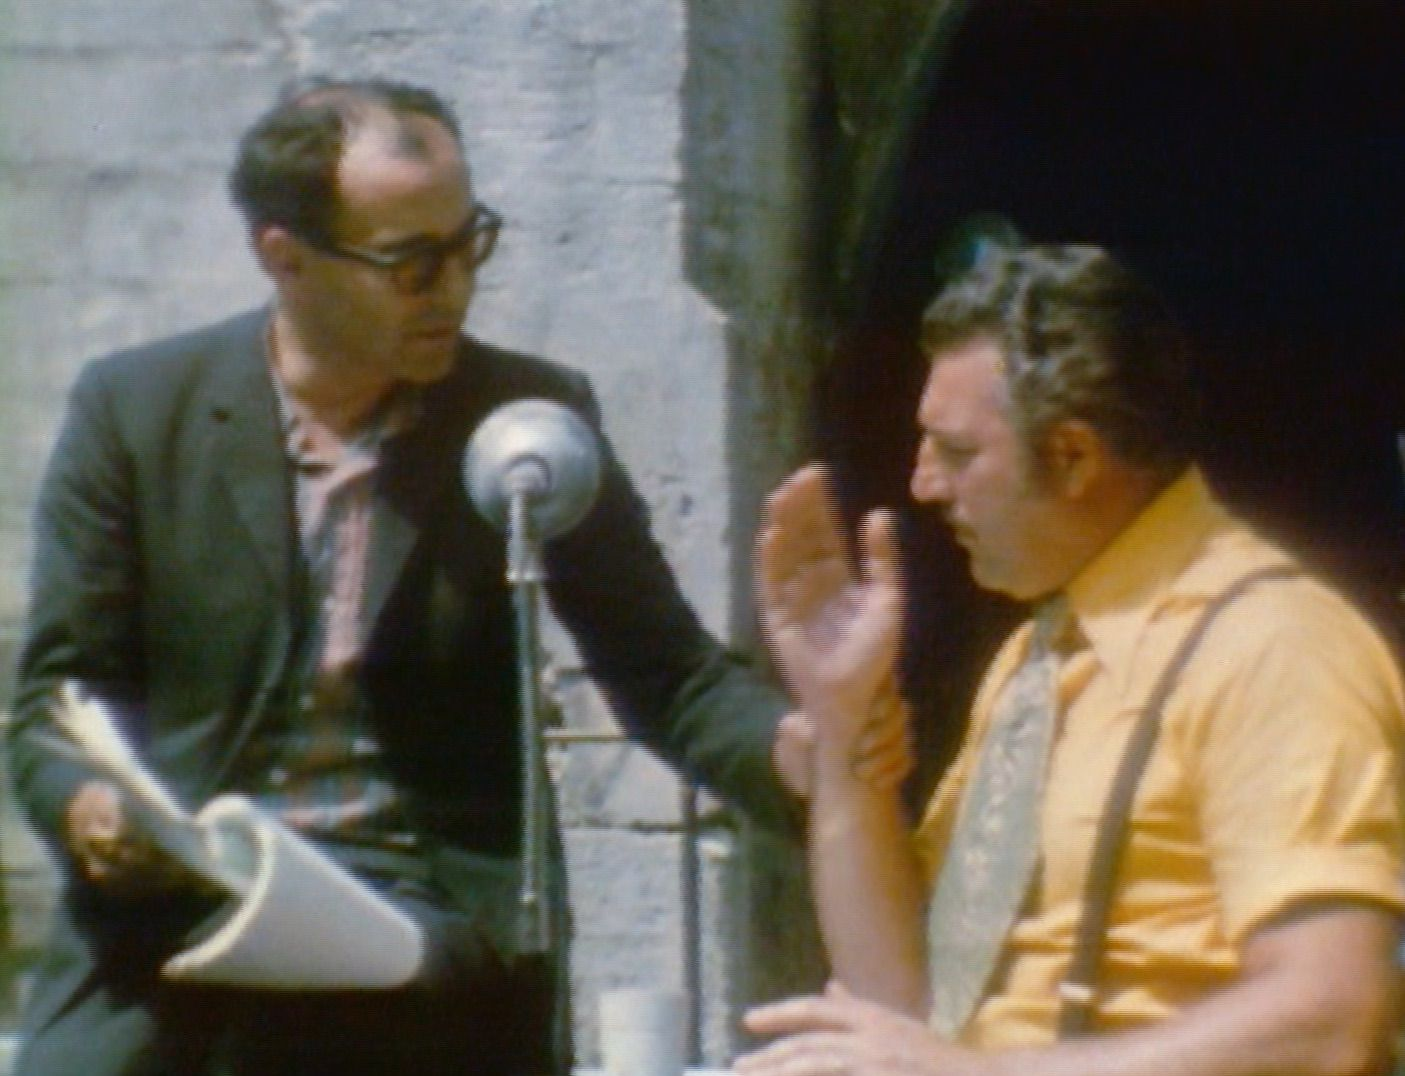 BETWEEN TWO MAYS (1968-1981): THE ARTISTS AND POLITICS